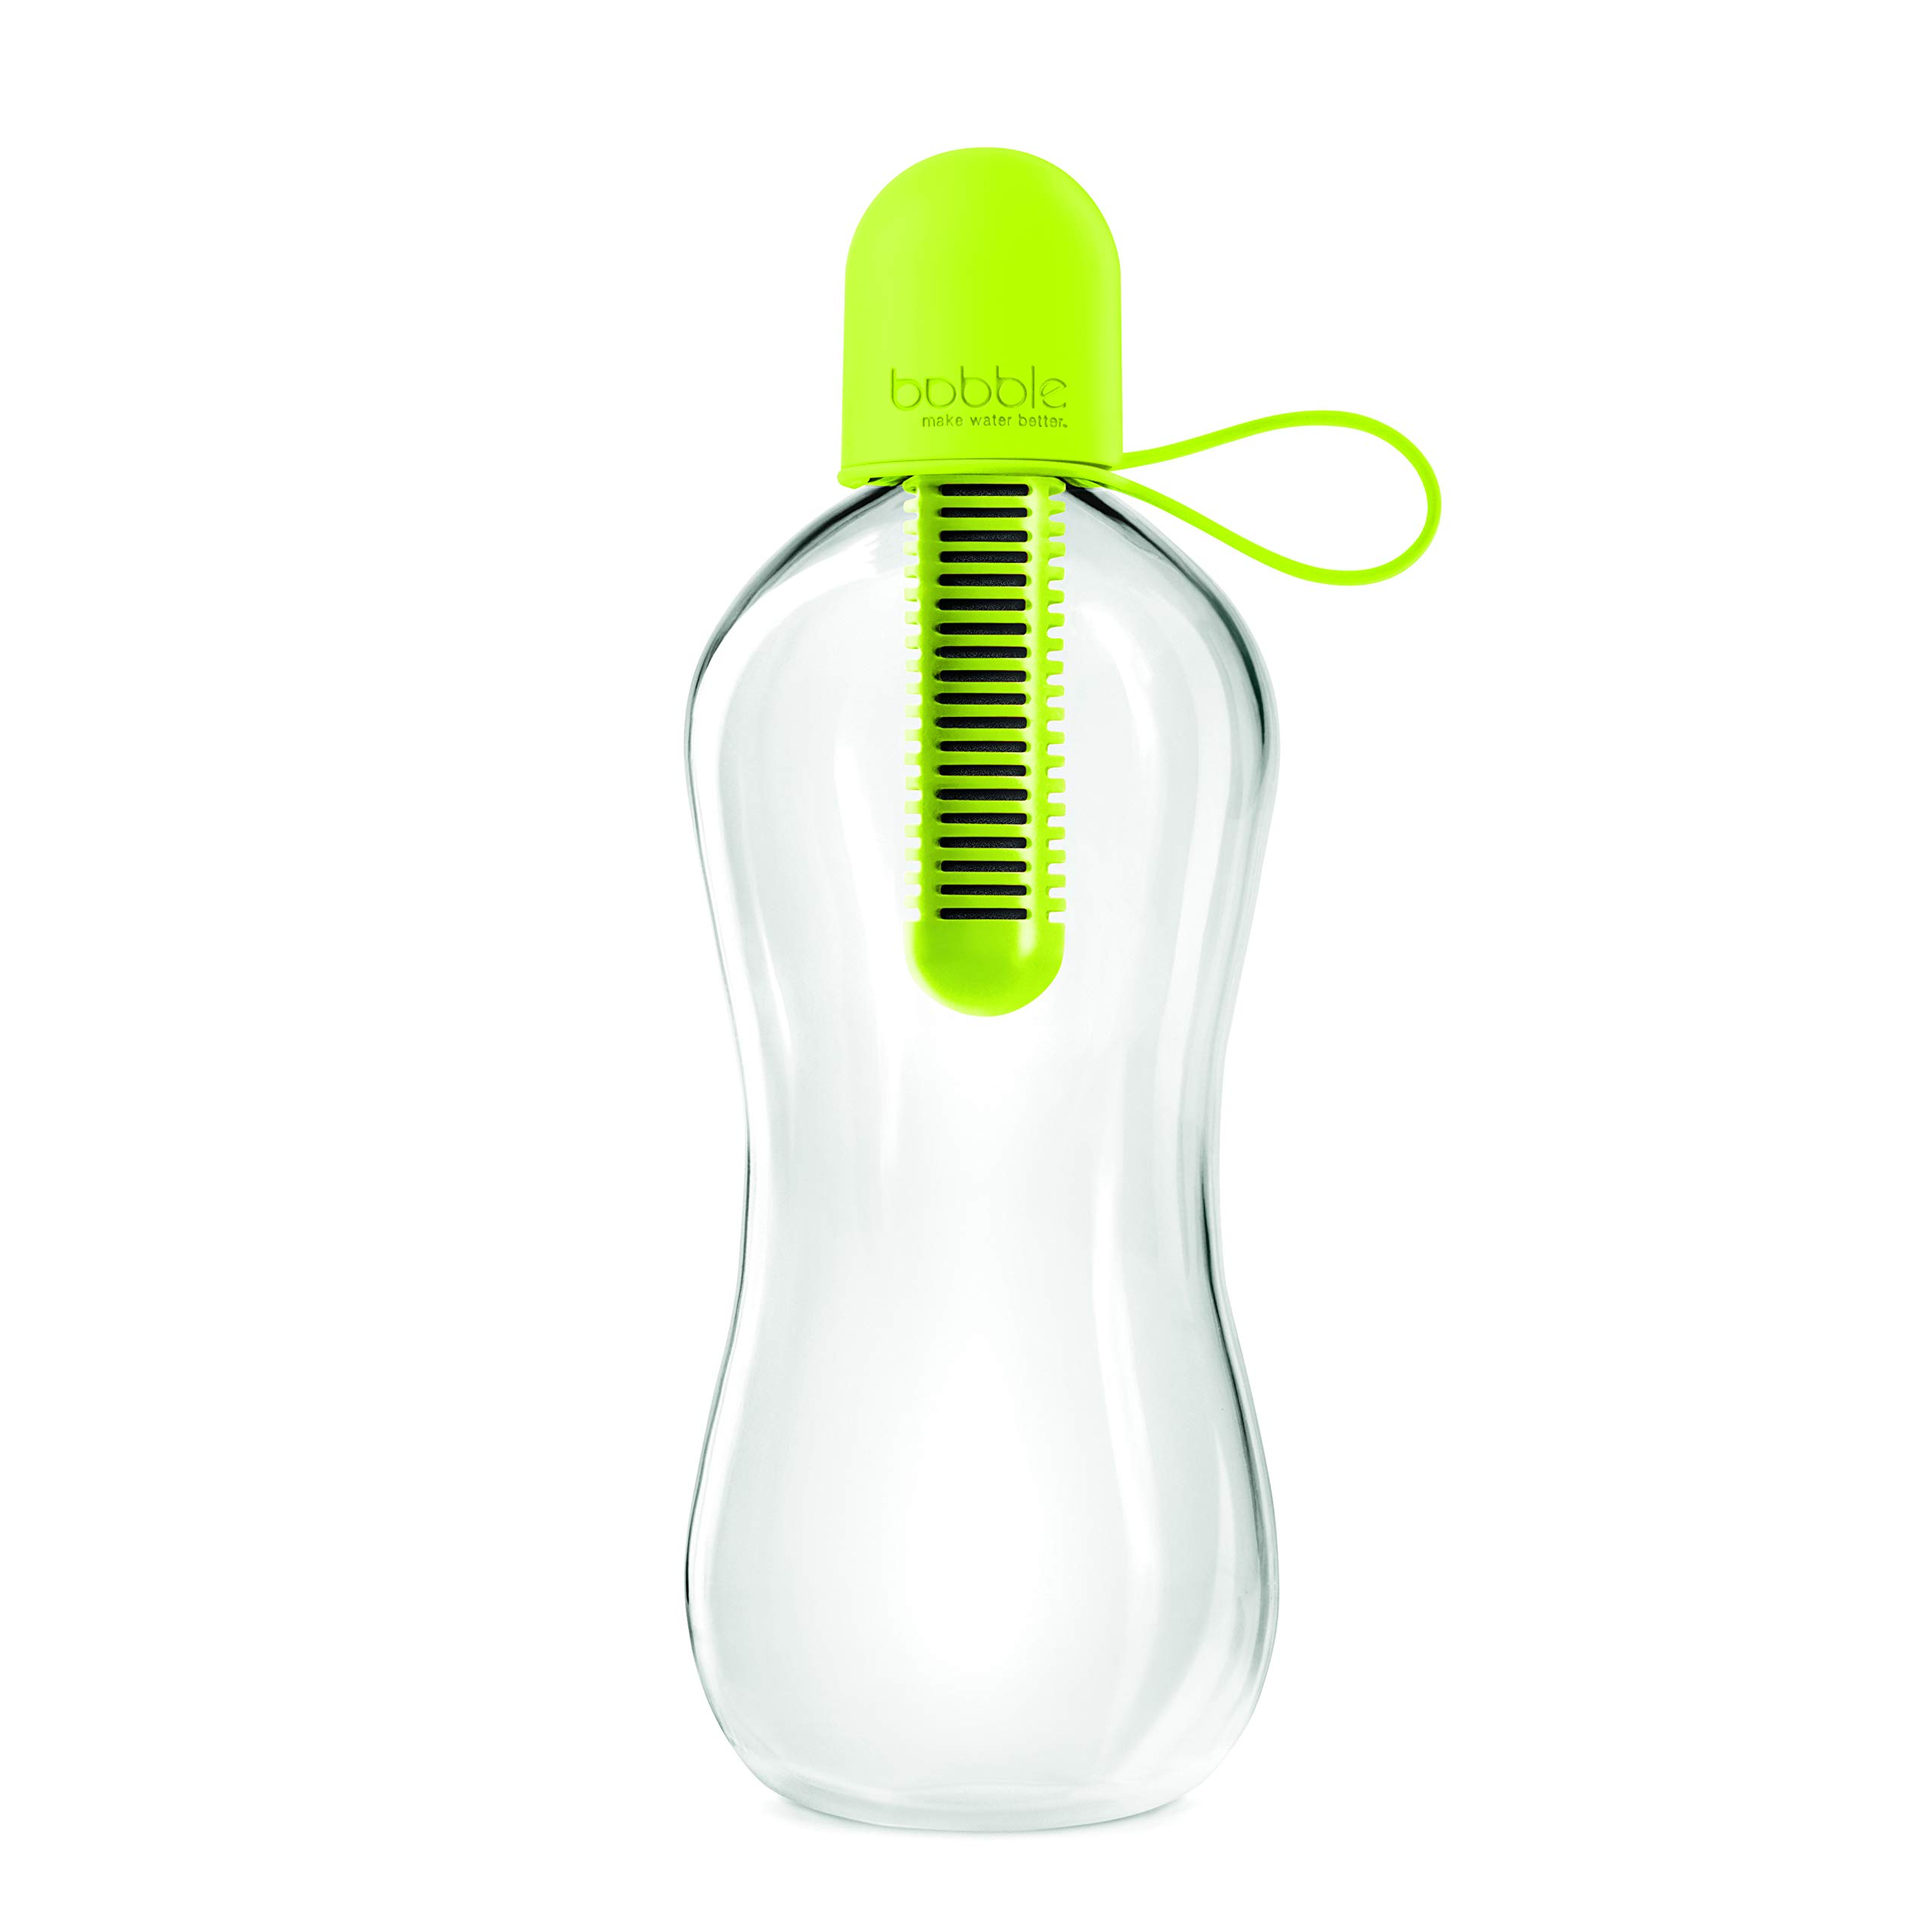 Bobble Classic, water bottle, filtered water, reusable water bottle, BPA-Free plastic bottle, soft touch carry cap, replaceable carbon filter, sustainable water bottle, hydration, 18.5 oz., Lime